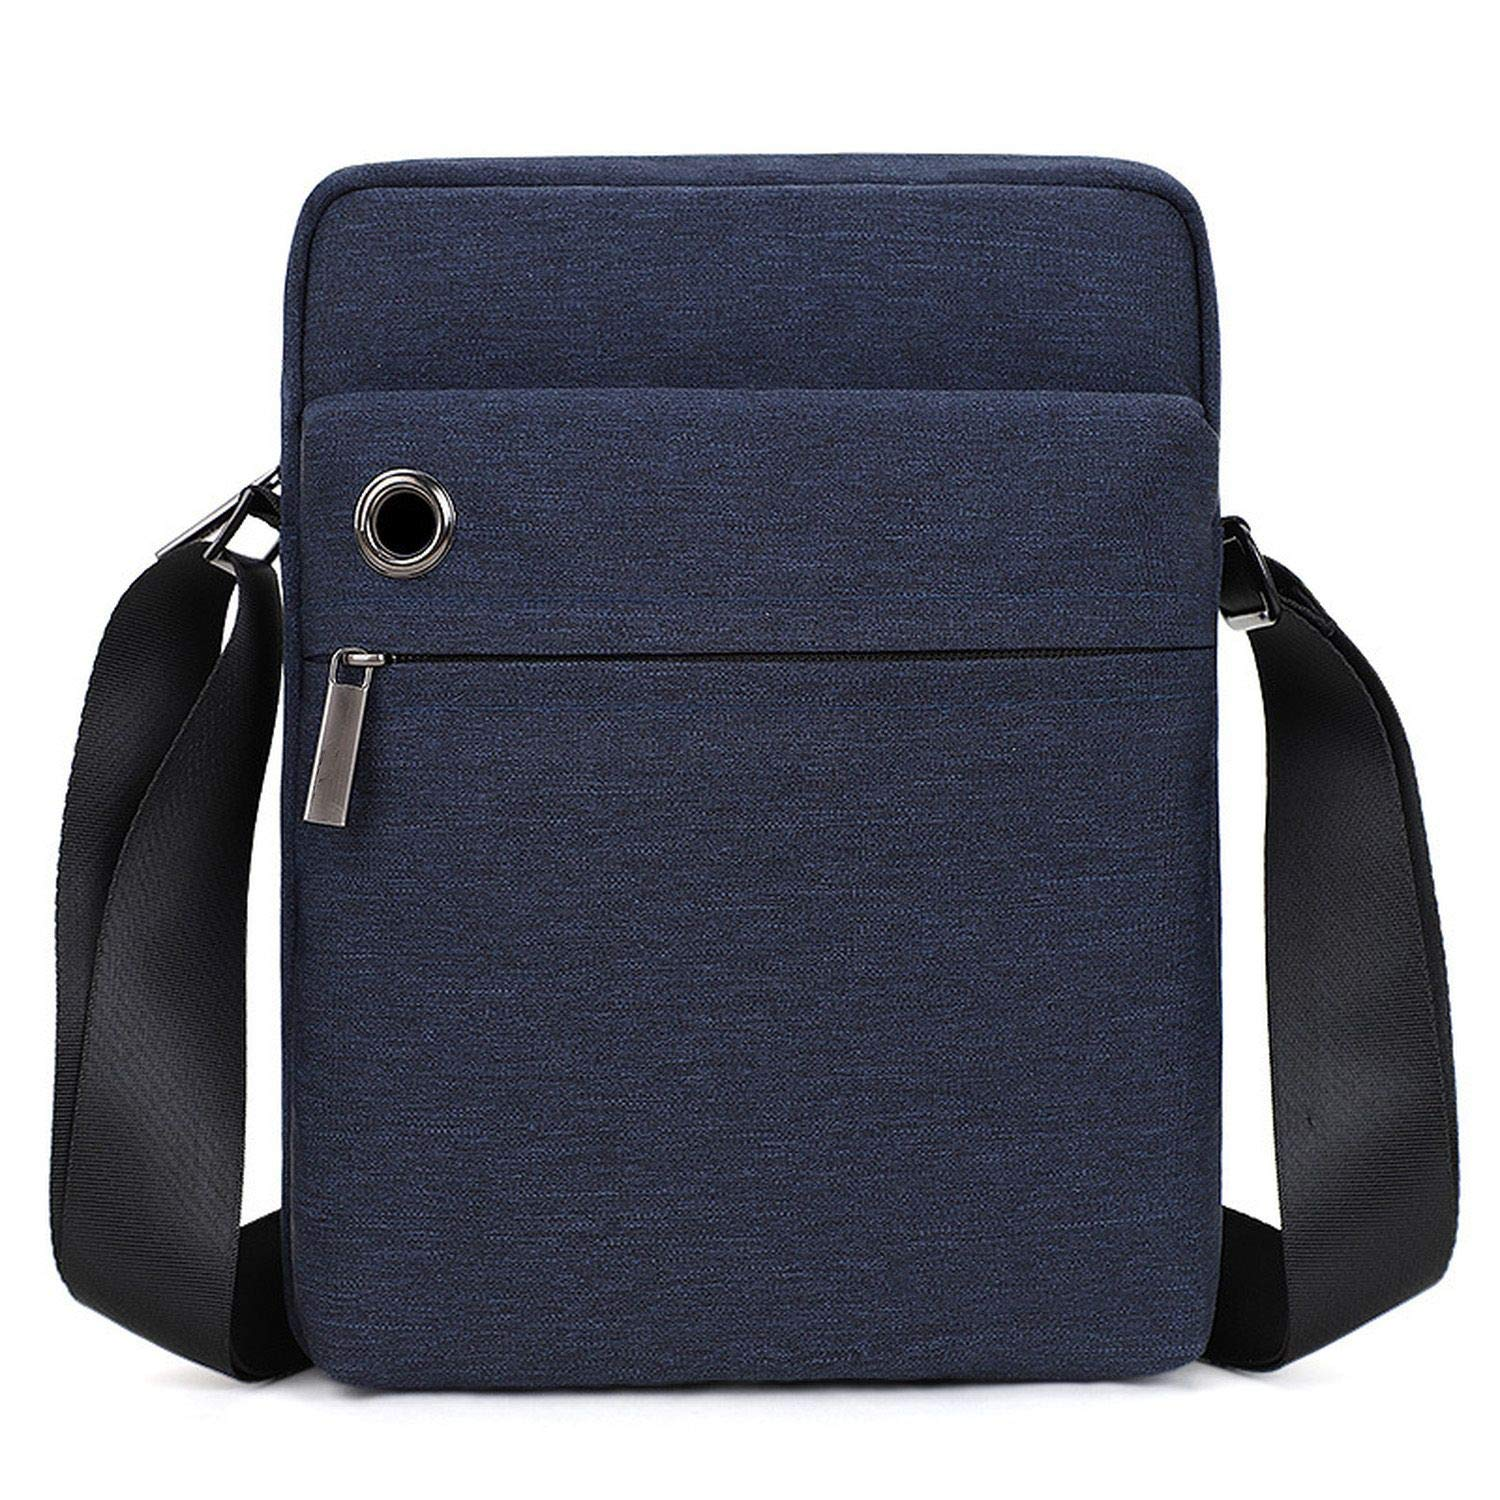 Men Bag Shockproof Mens Crossbody Bag Light Casual Canvas Men Shoulder Bag Male Waterproof Messenger Bags,T511-Dark Gray